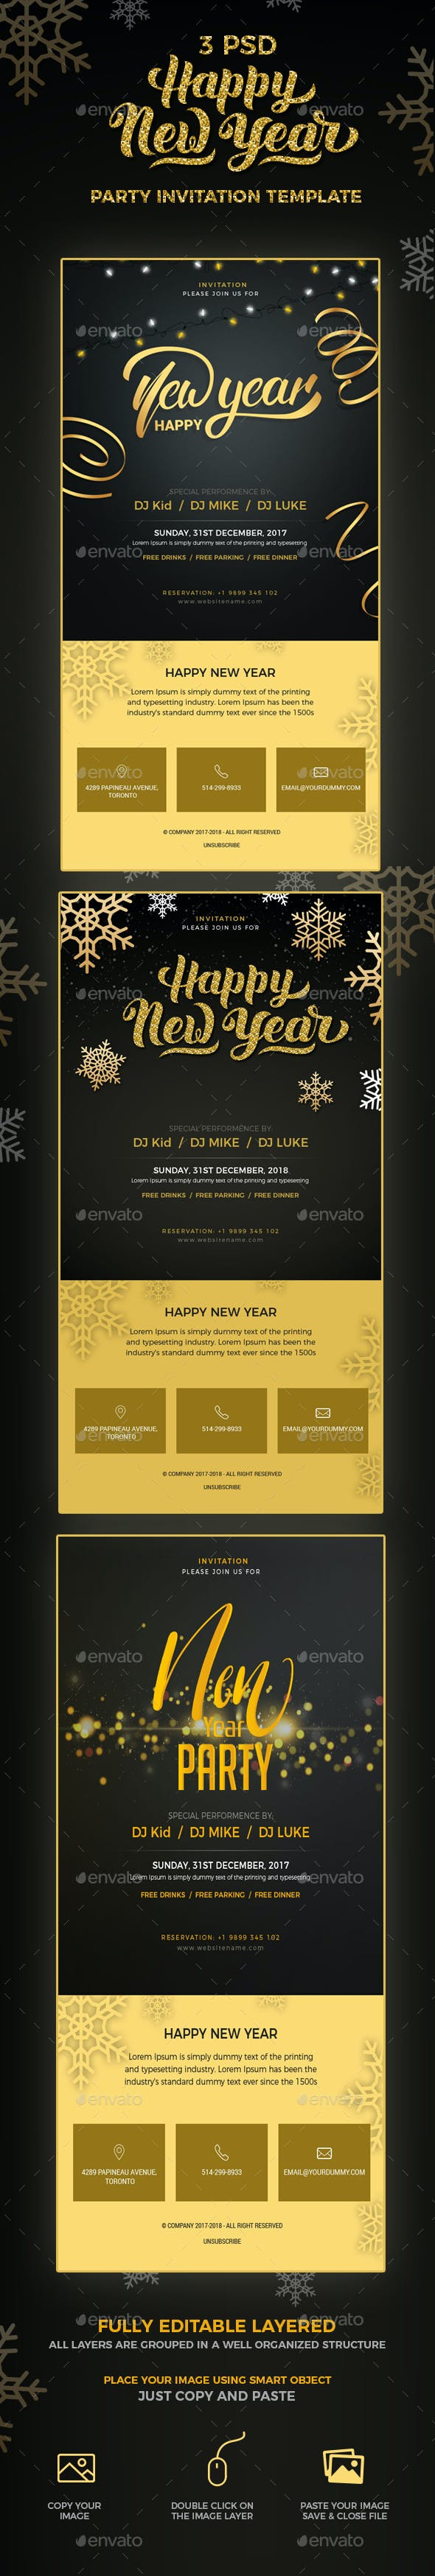 new year party invitation email template psd e newsletters web elements